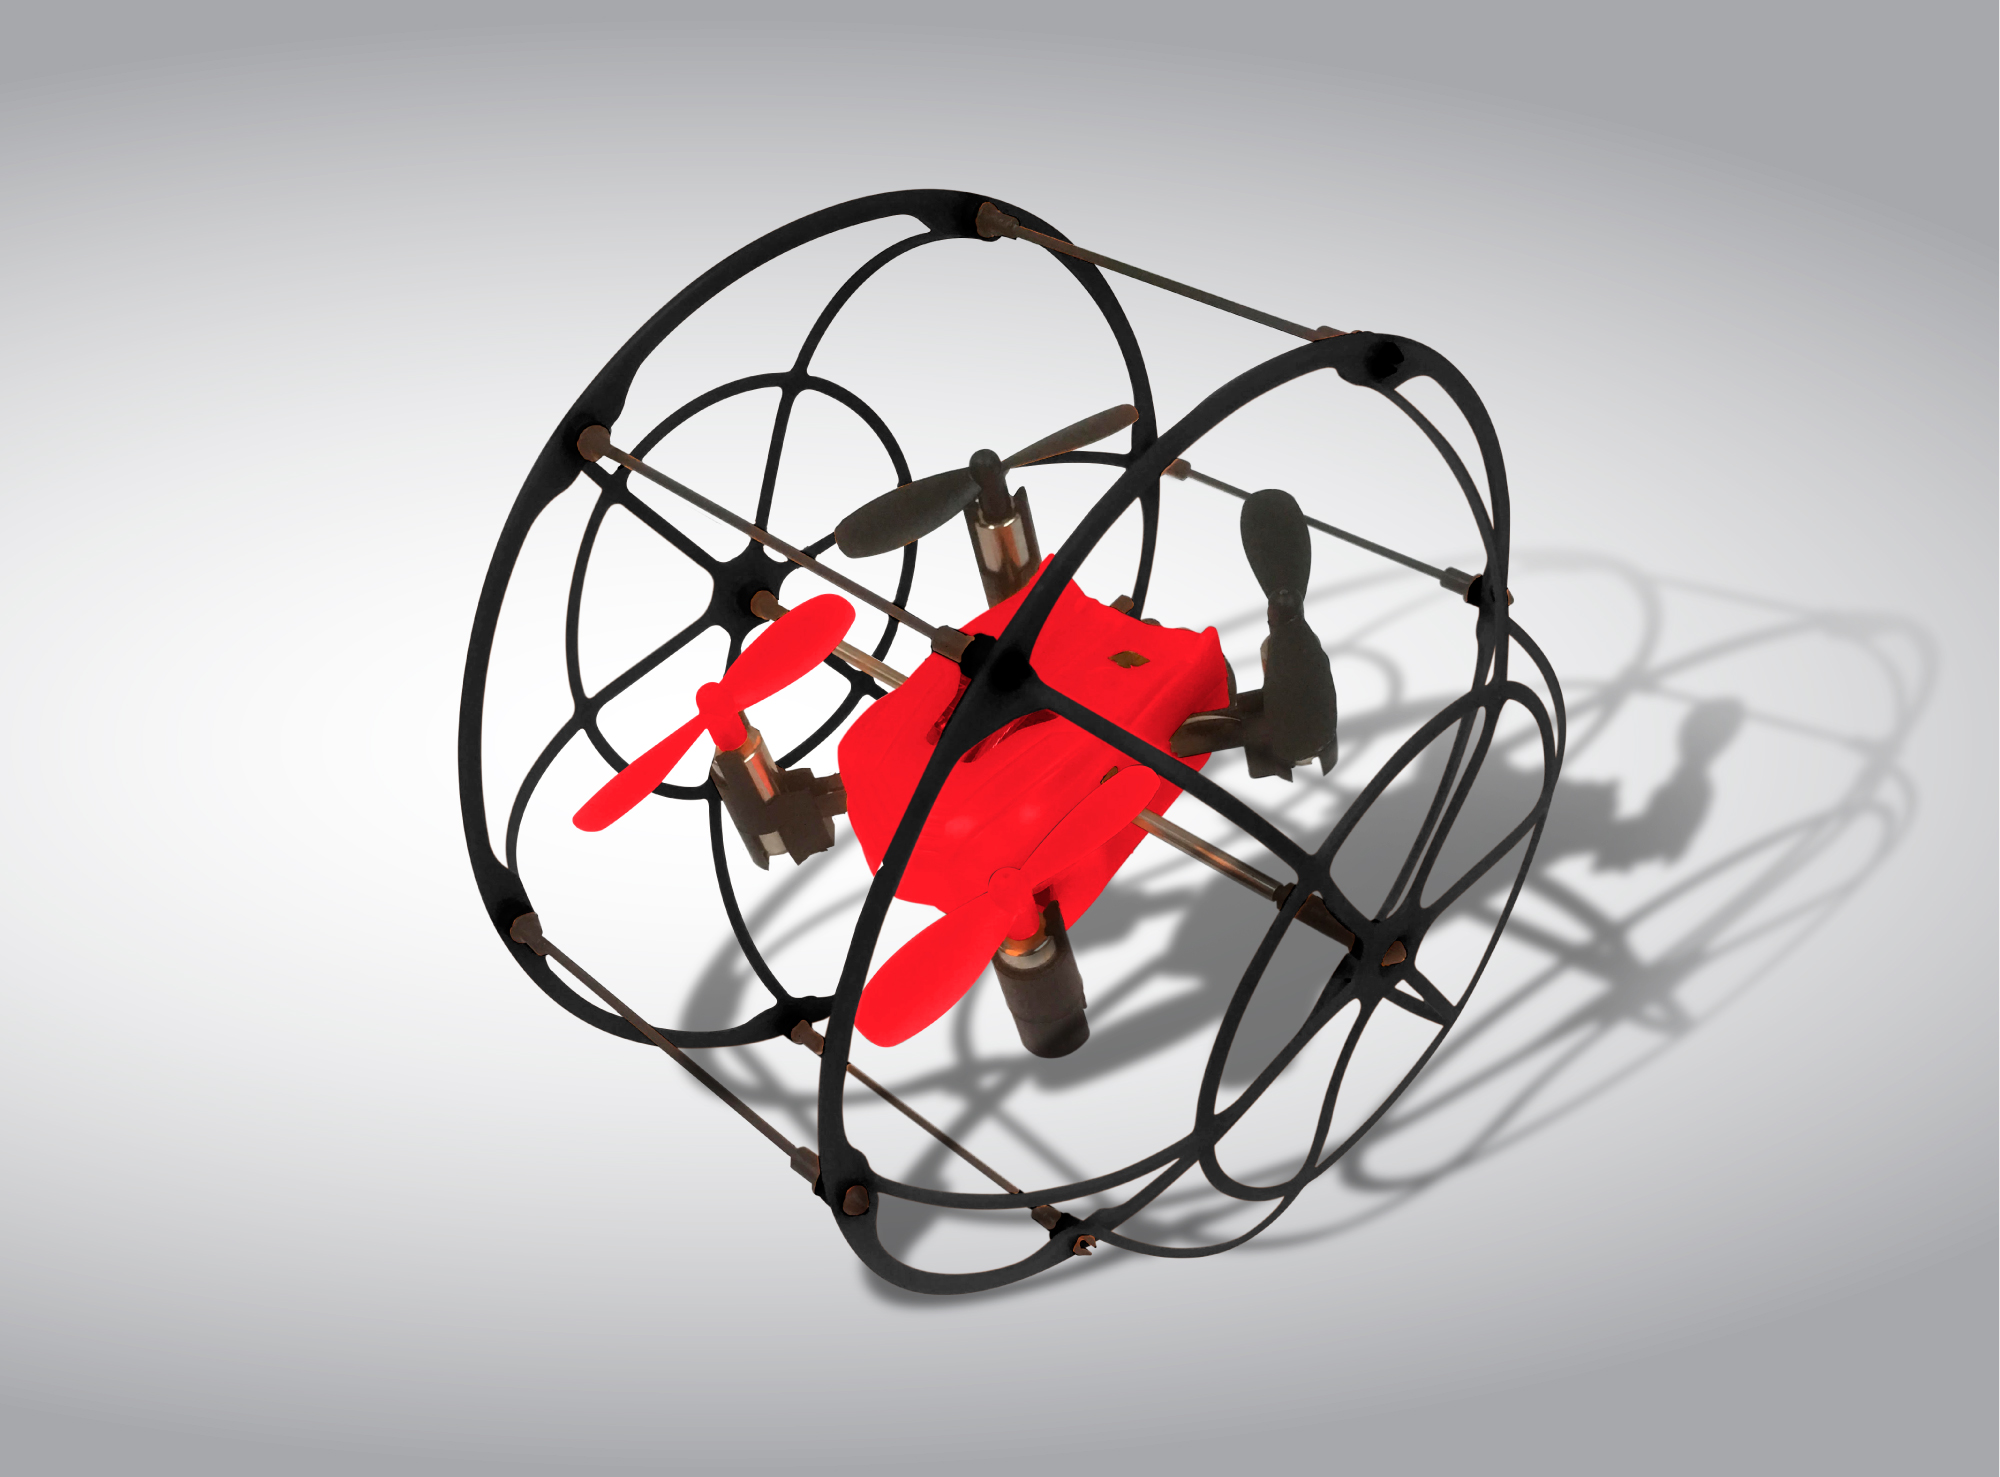 Drones, RC Toys, Flying Machines